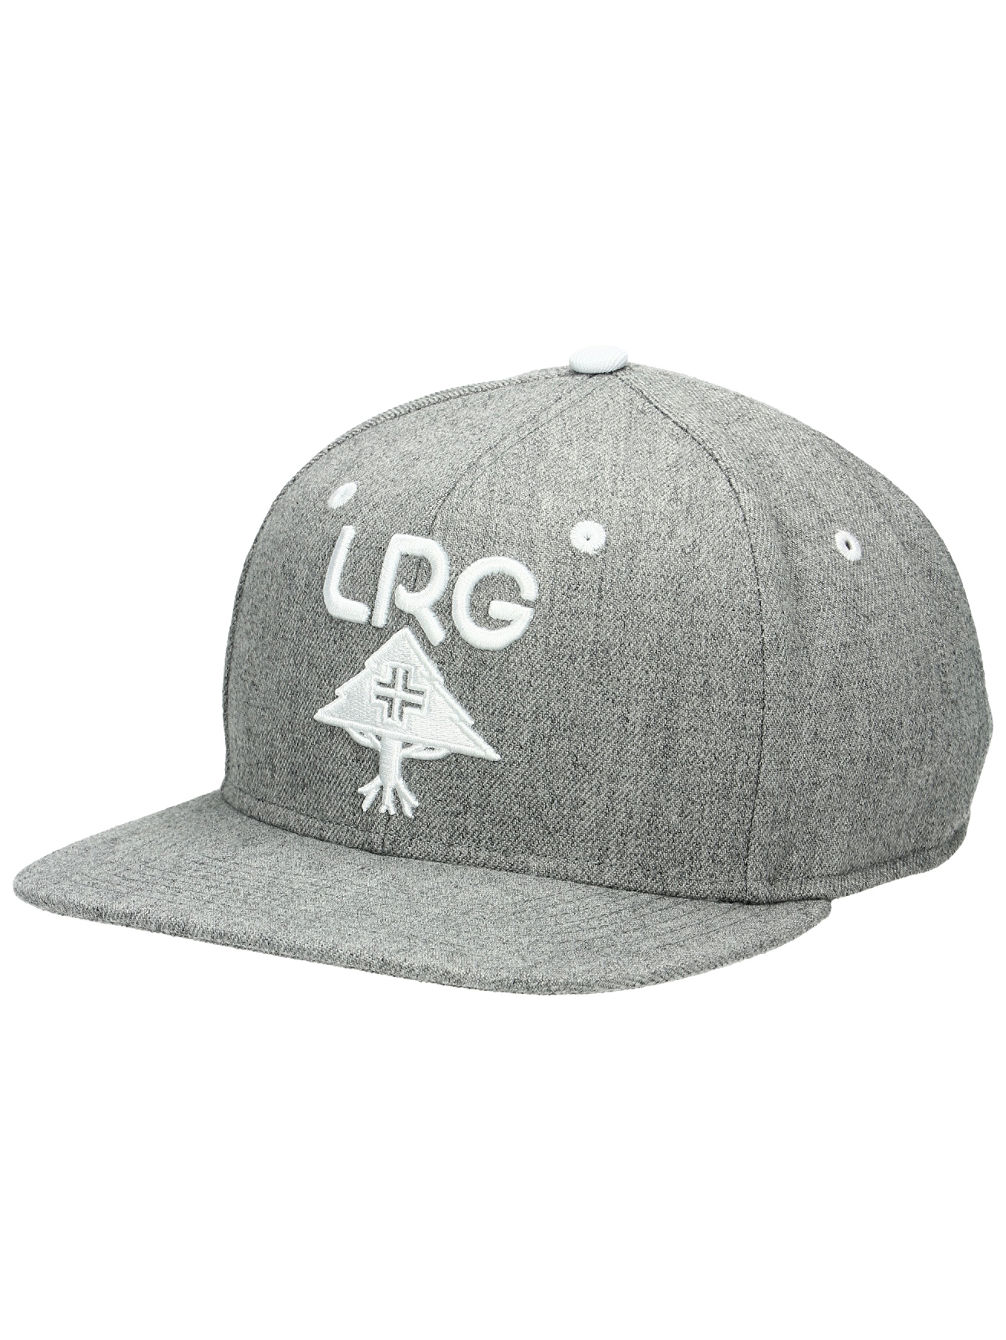 lrg-research-group-snapback-cap